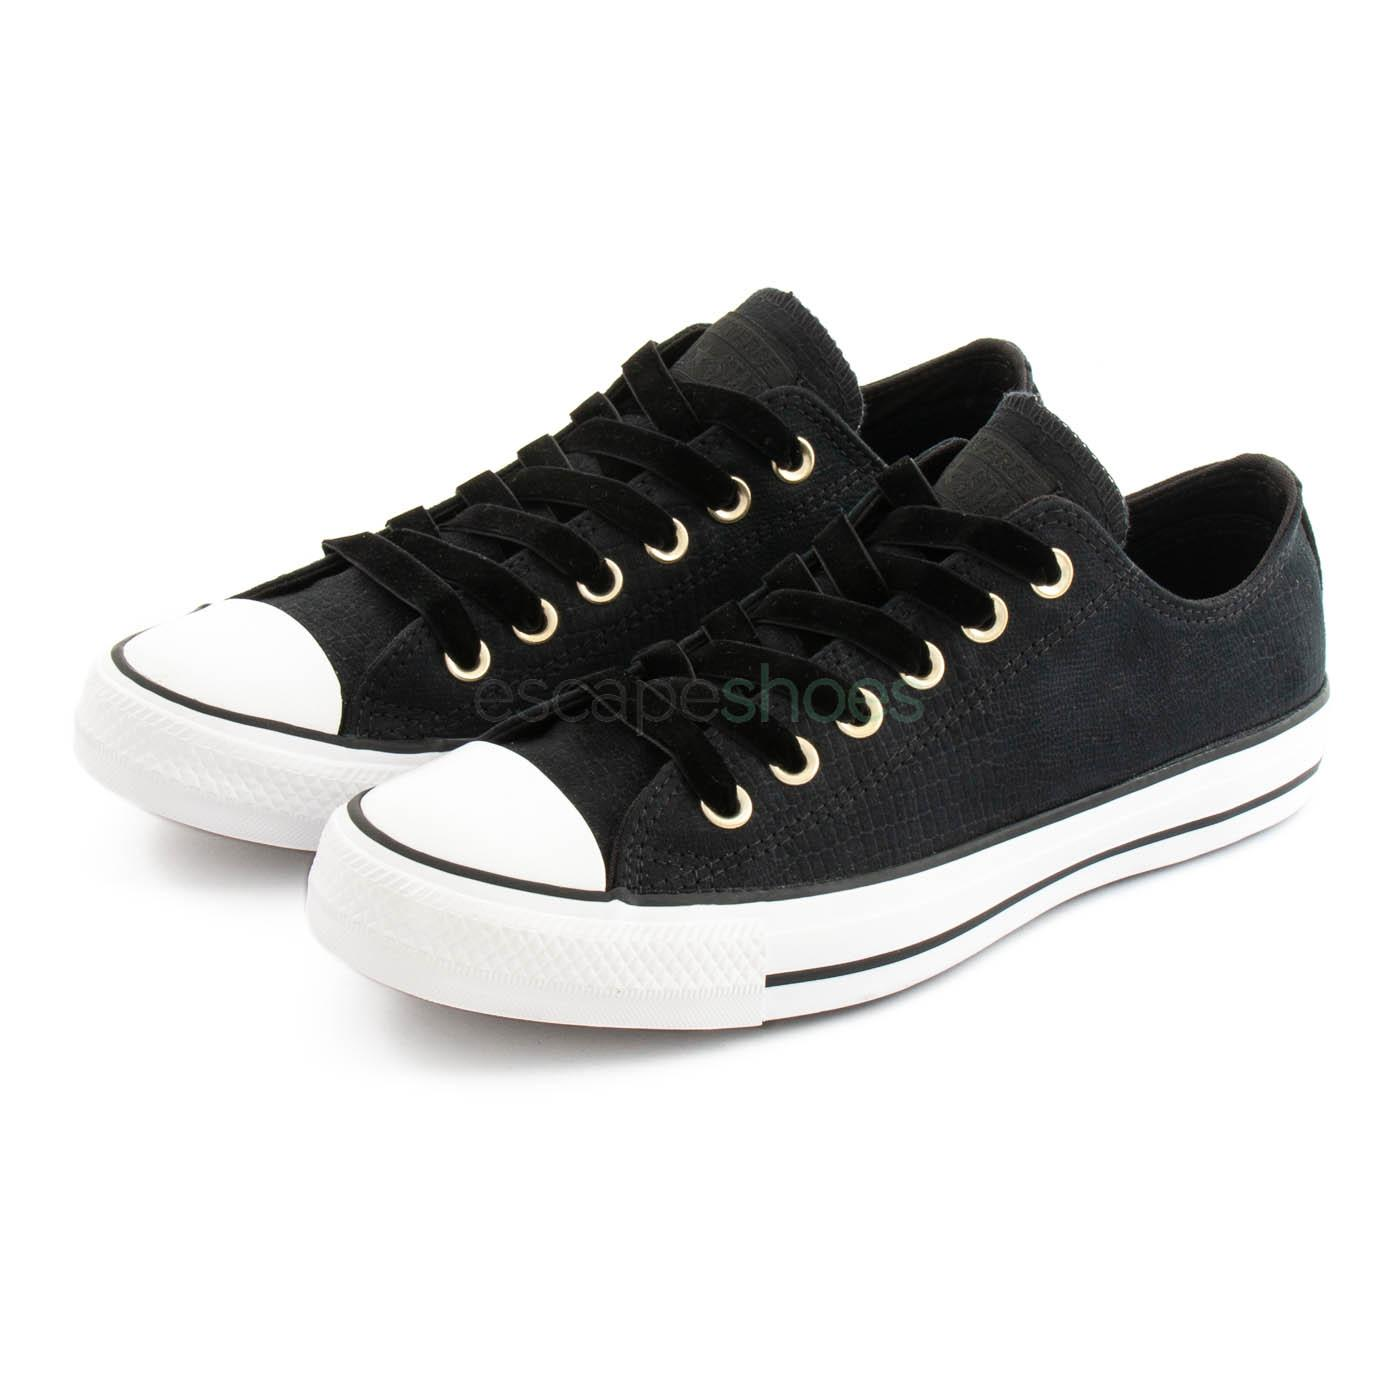 efc95ad9d8 Buy your Sneakers CONVERSE Chuck Taylor All Star Ox Black here ...